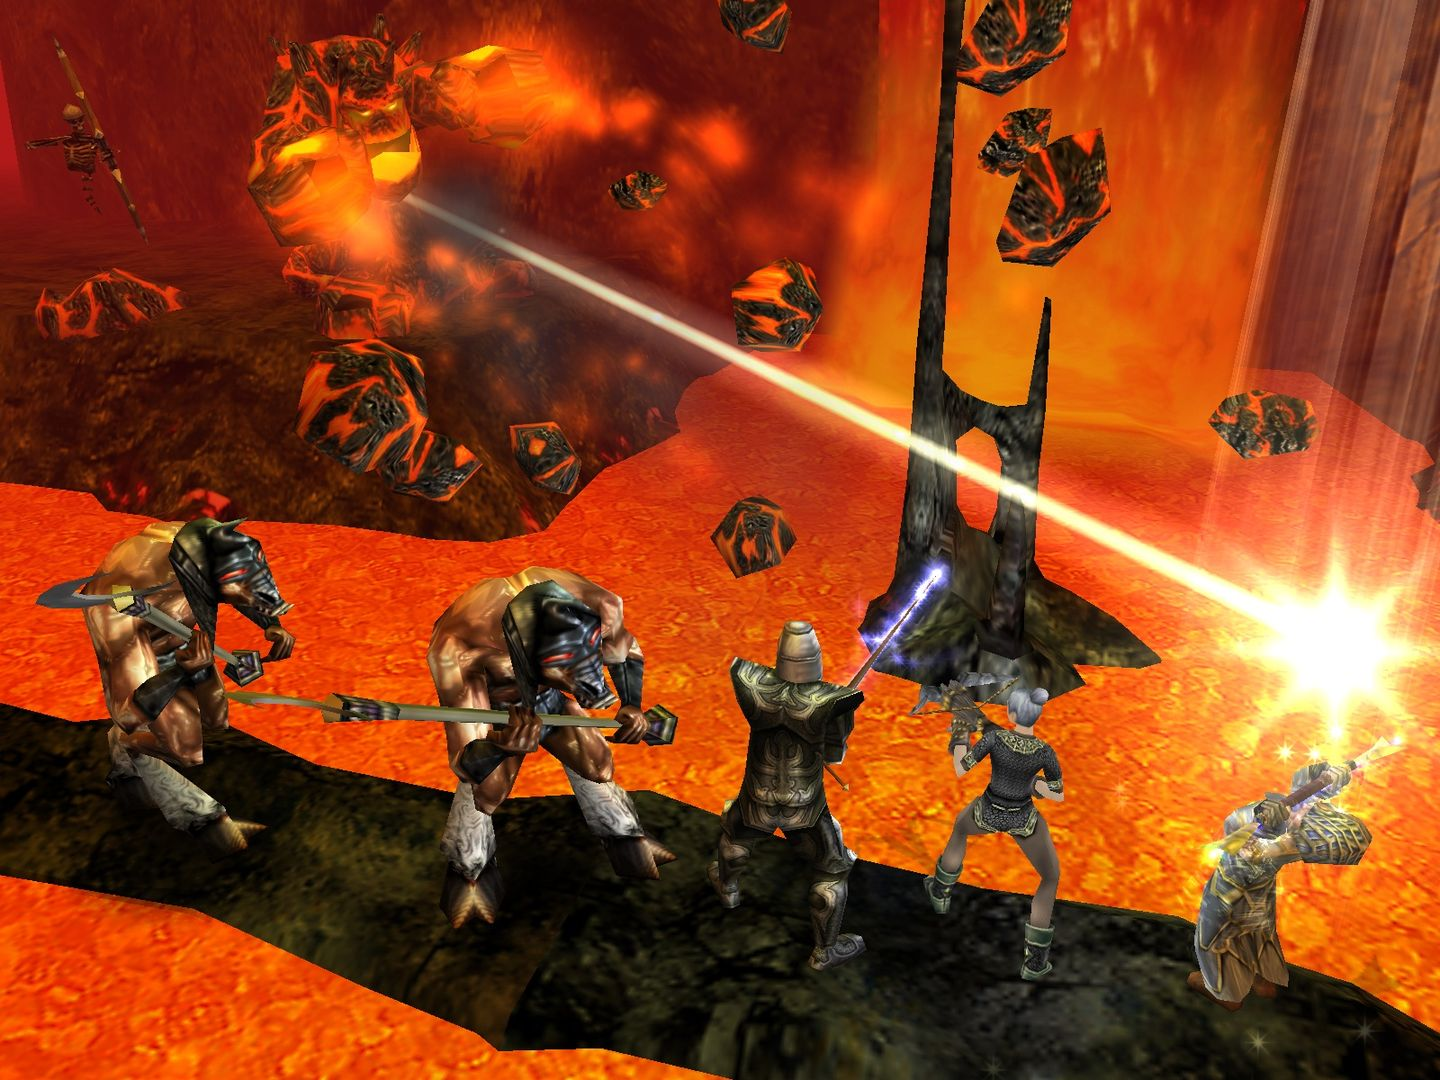 Find the best laptop for Dungeon Siege